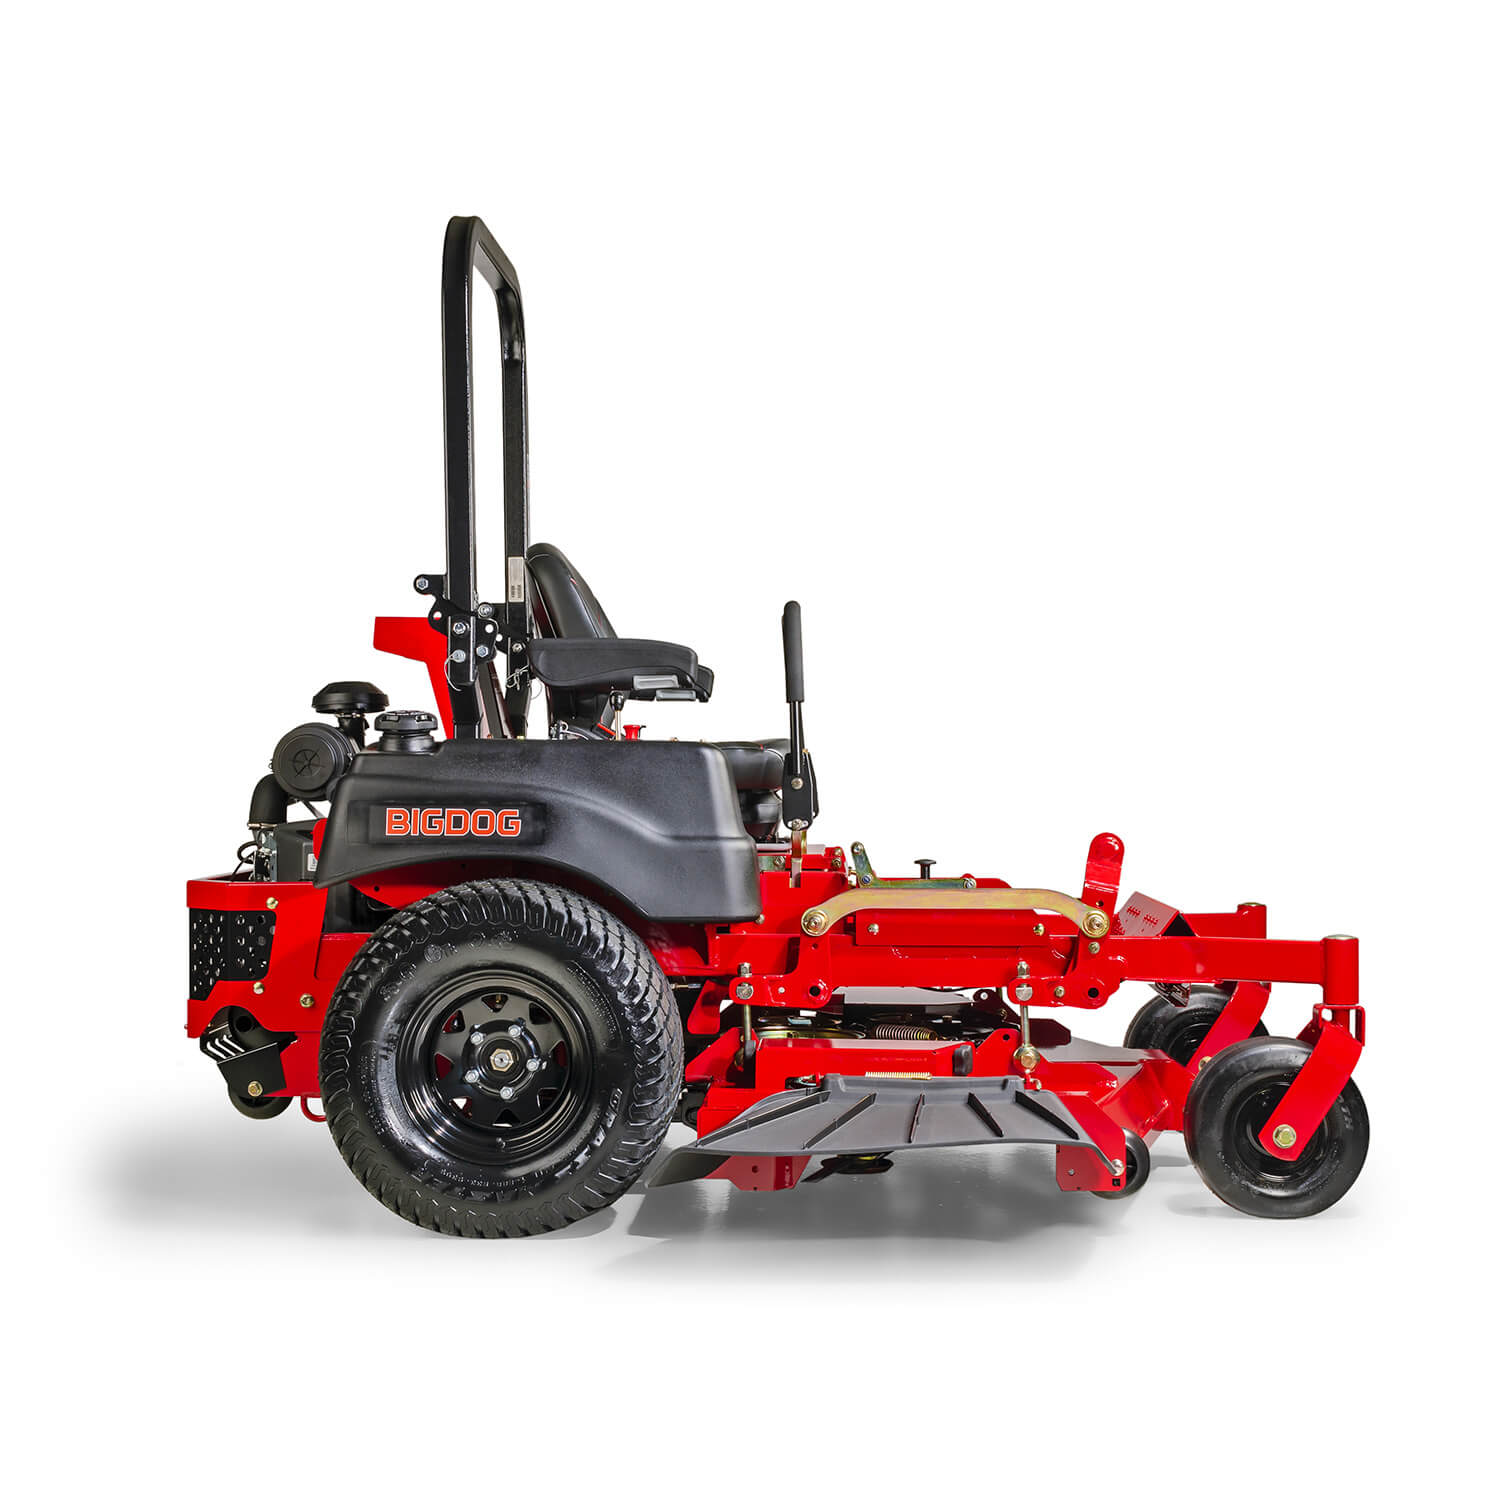 Image of the profile of a red riding mower